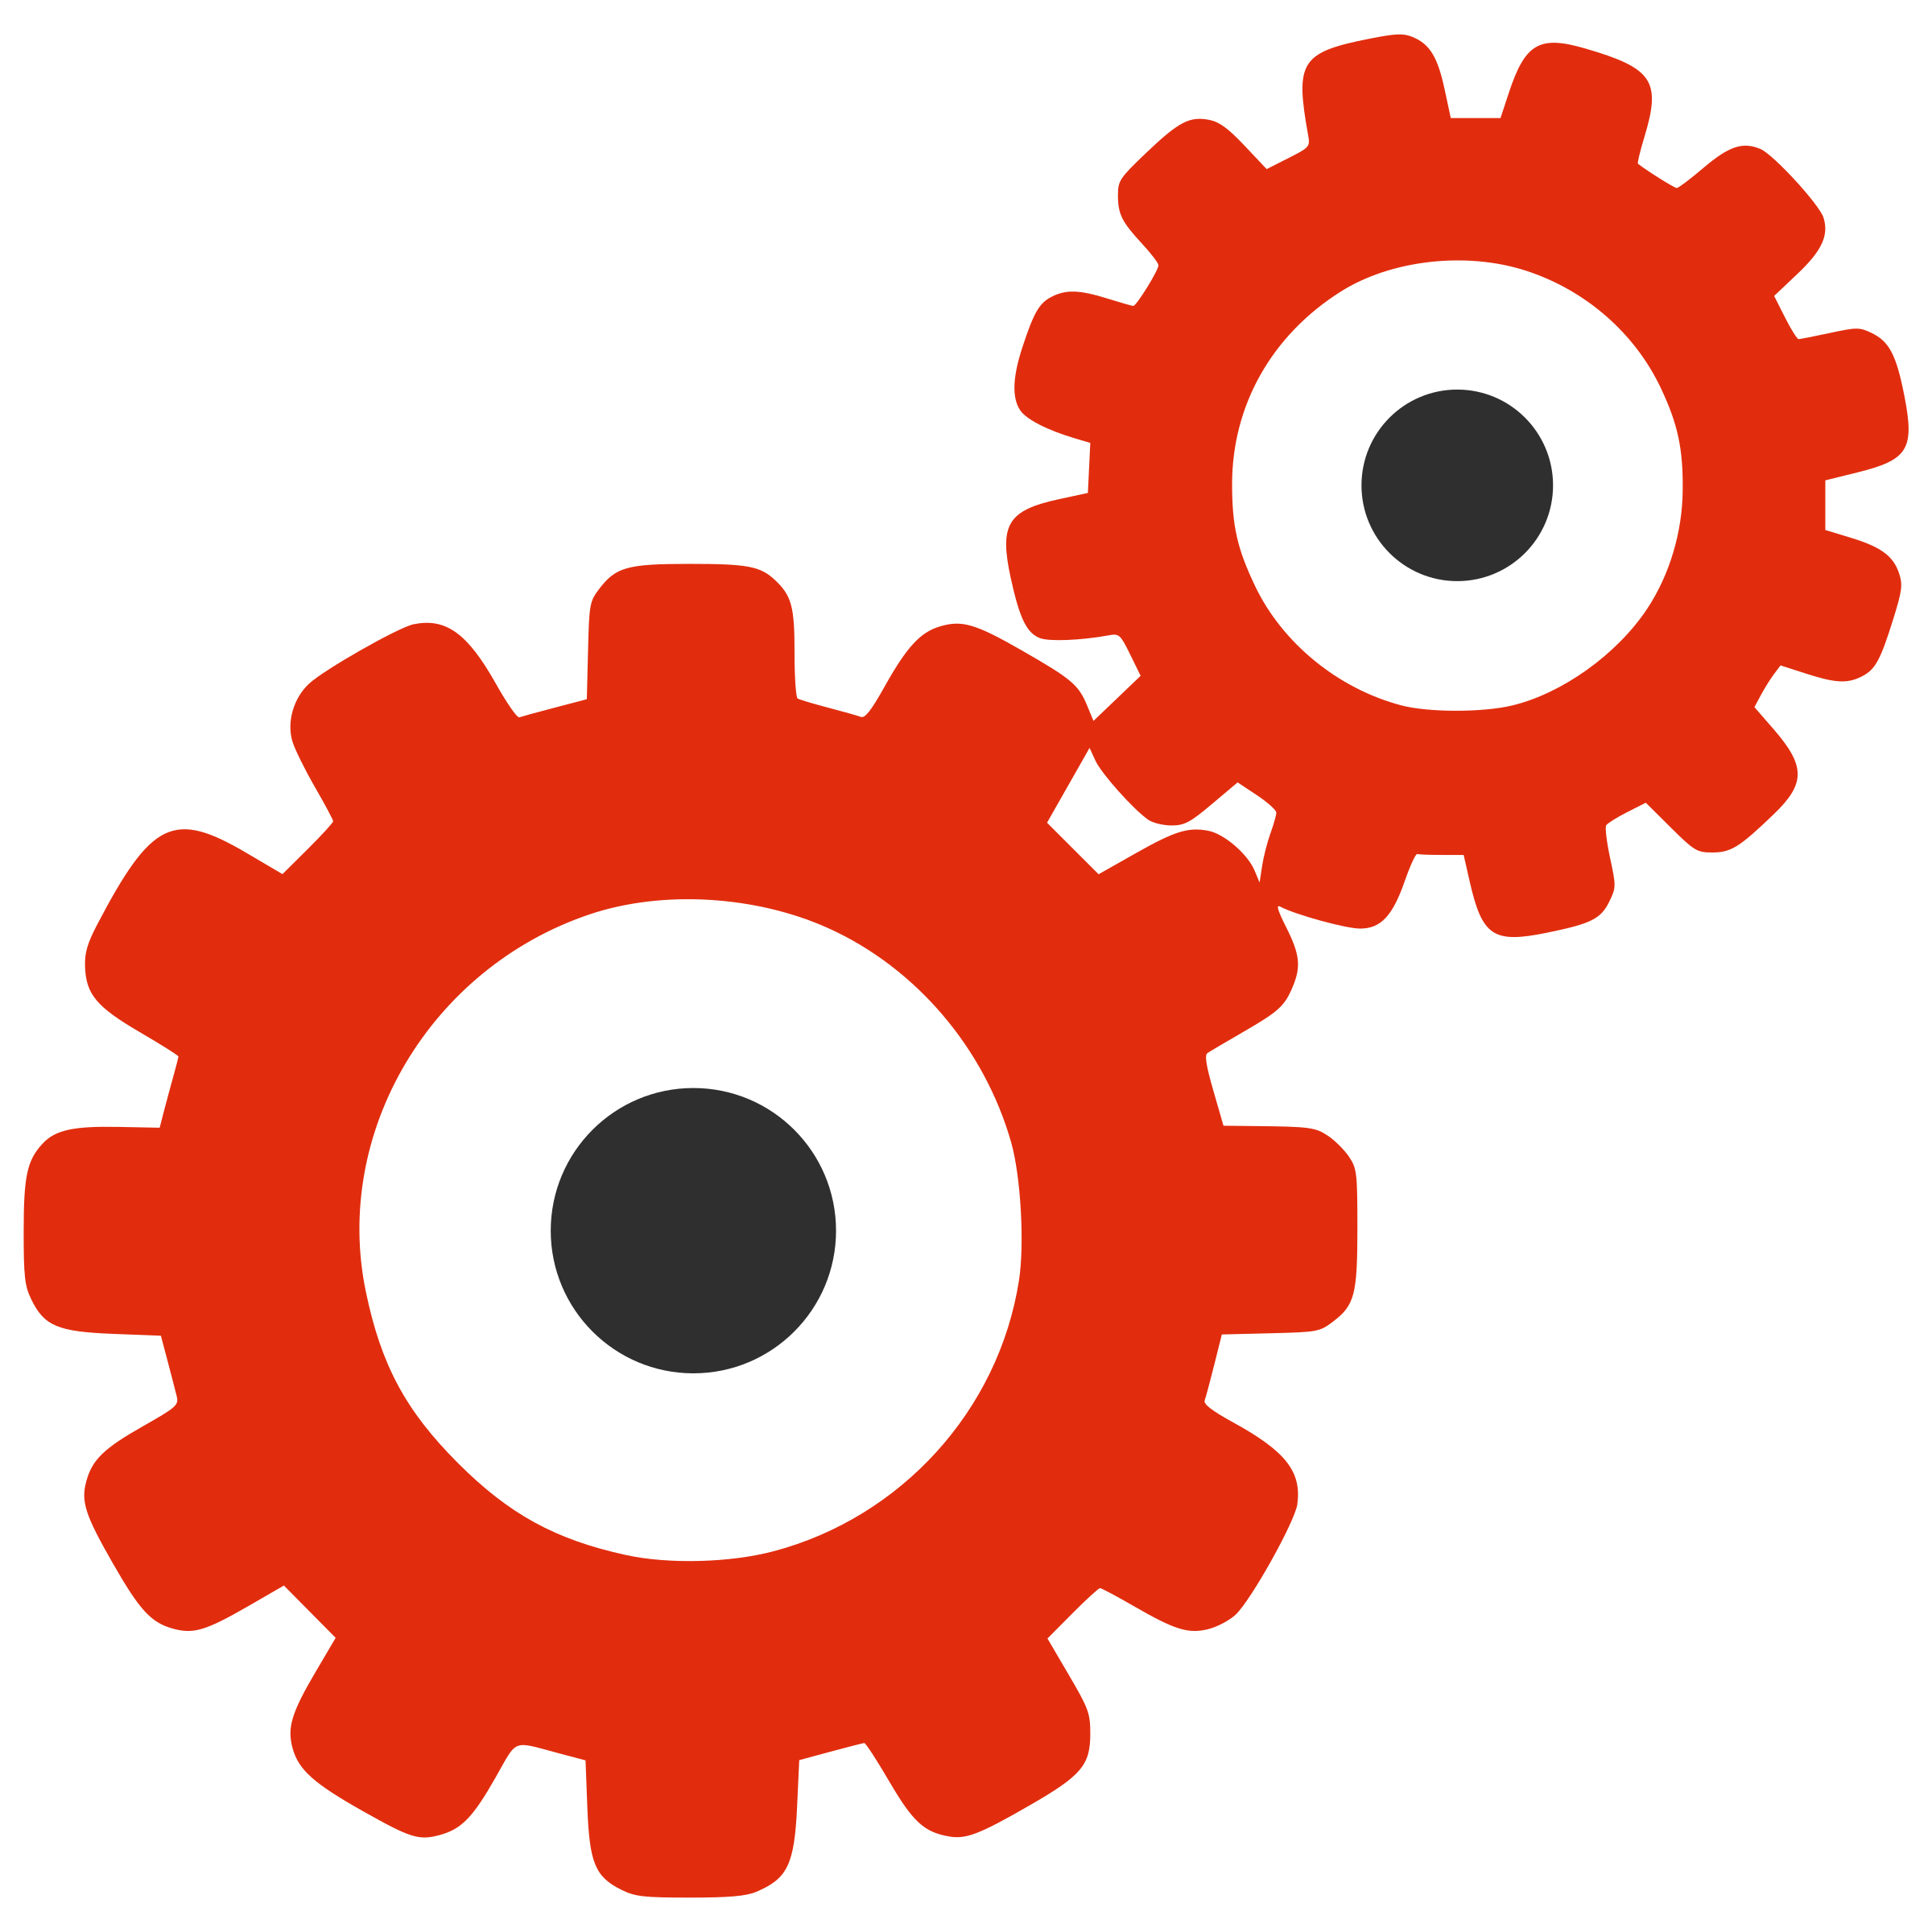 Pulleys and gears on. Gear clipart pulley gear